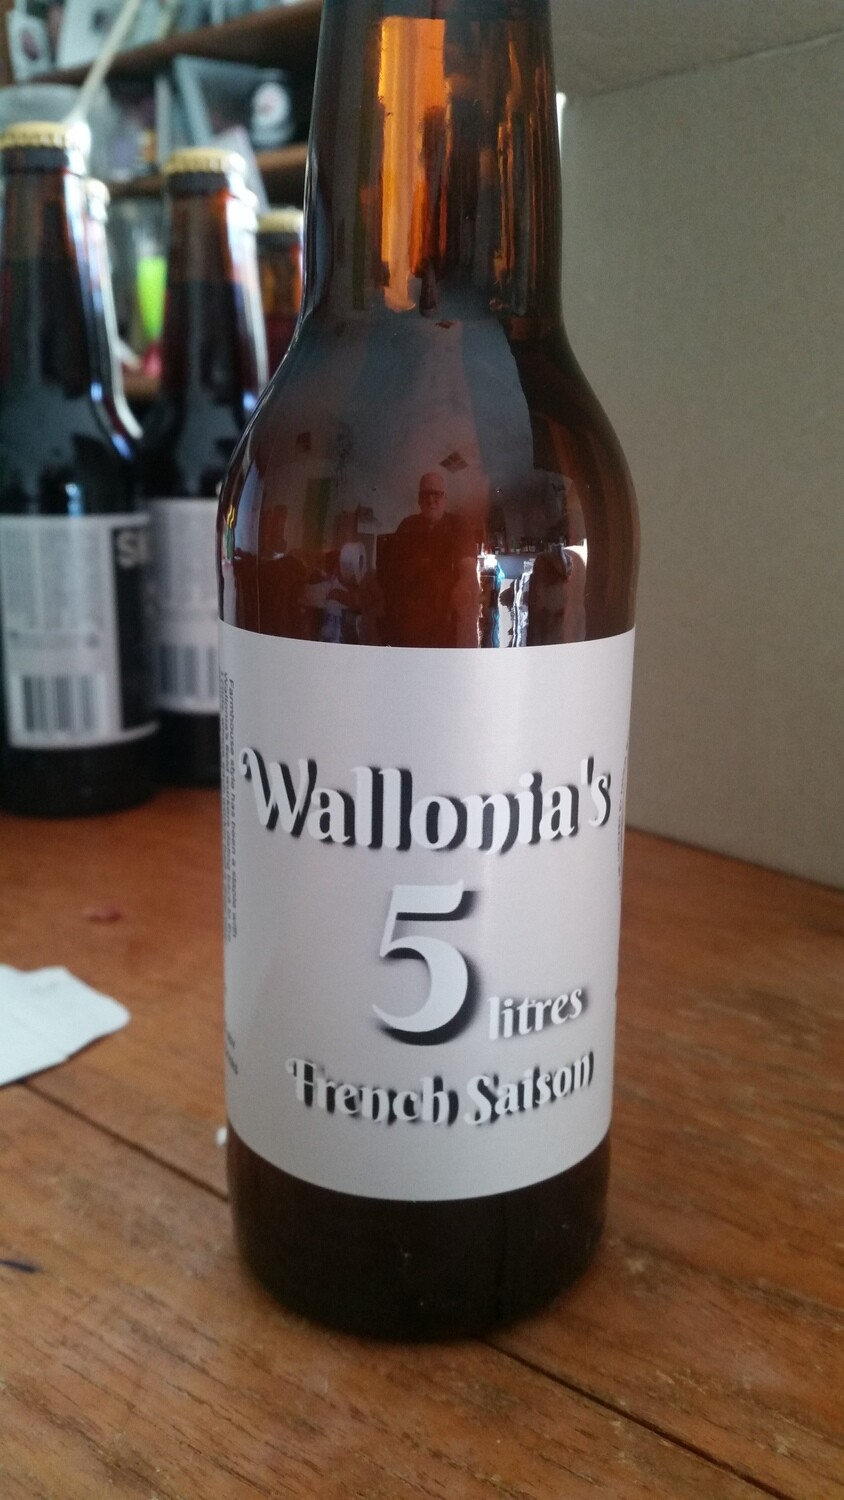 Wallonia's 5lt French Saison  6 x 330ml bottles